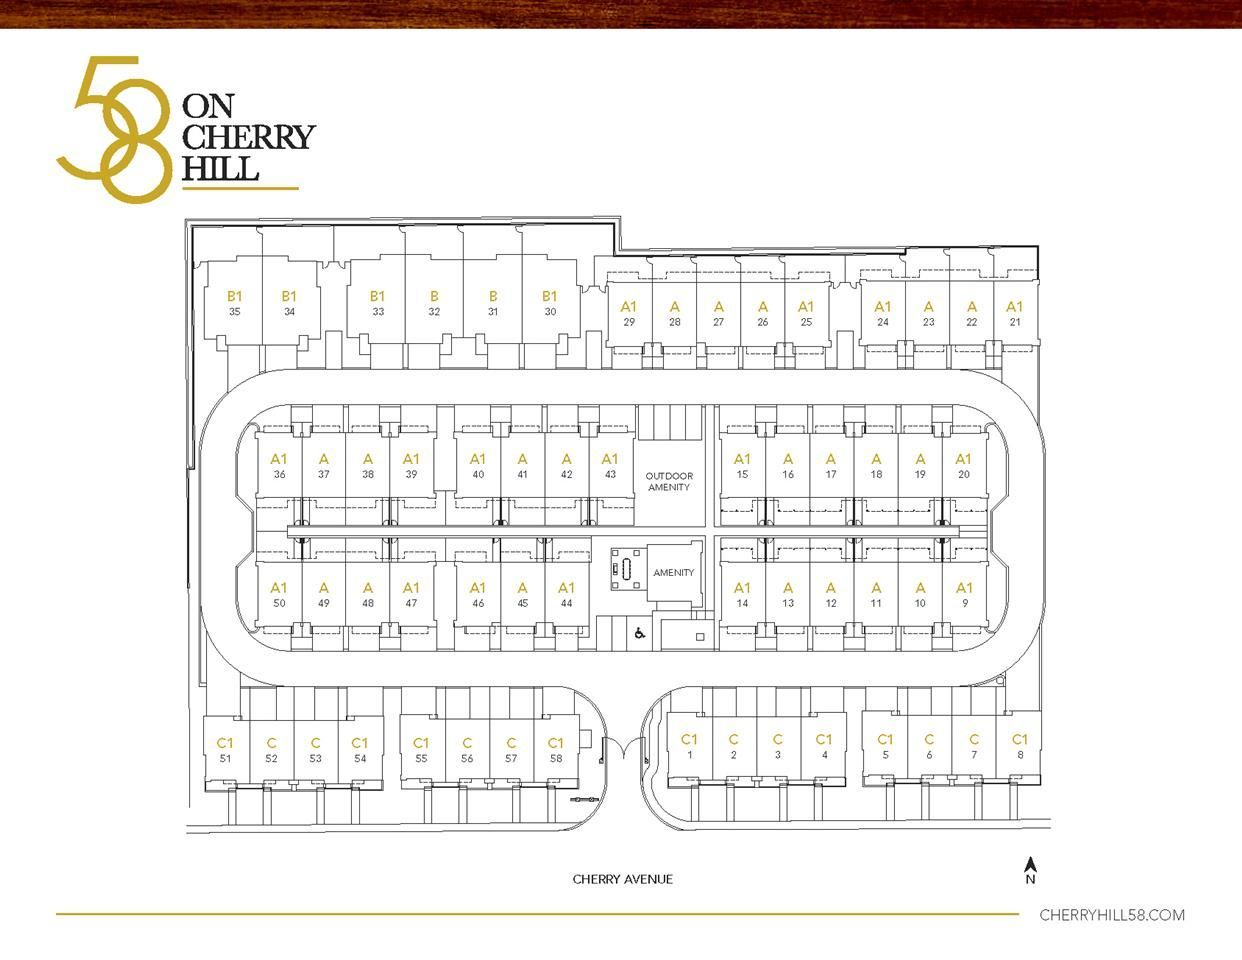 """Photo 9: Photos: 17 33209 CHERRY Avenue in Mission: Mission BC Townhouse for sale in """"58 on CHERRY HILL"""" : MLS®# R2262600"""